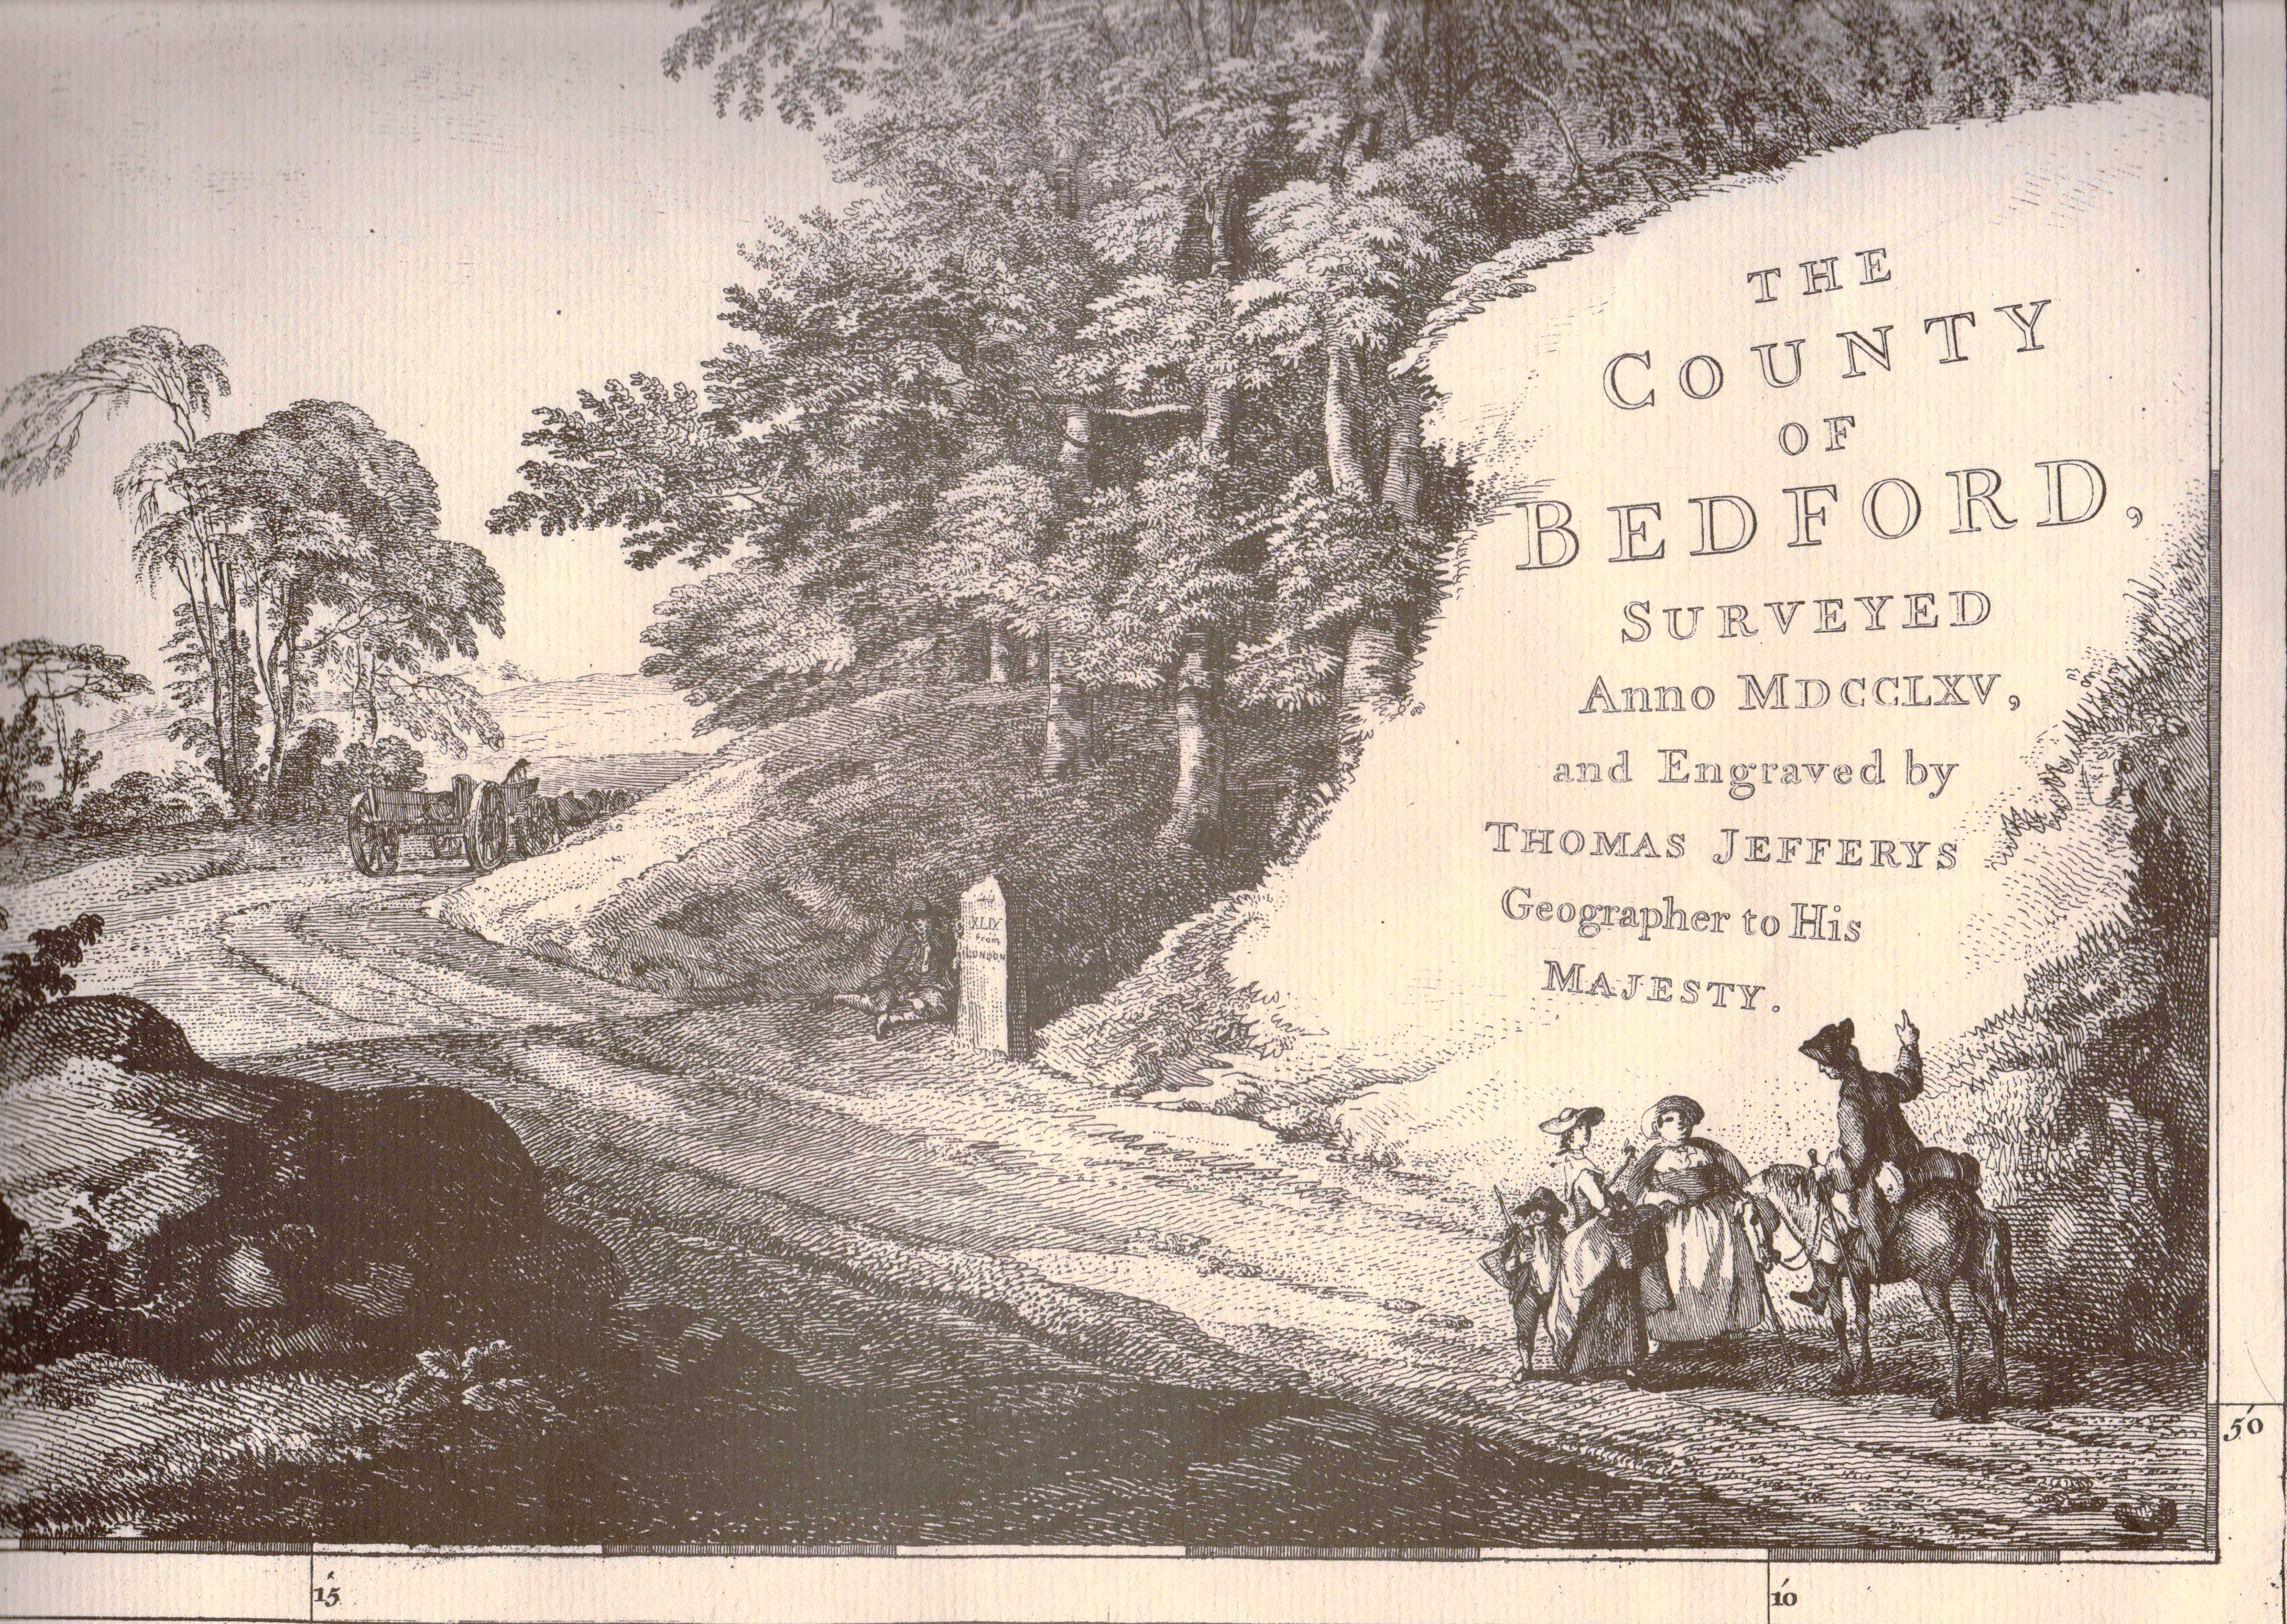 The County of Bedford surveyed Anno MDCCLXV and engraved by Thomas Jefferys